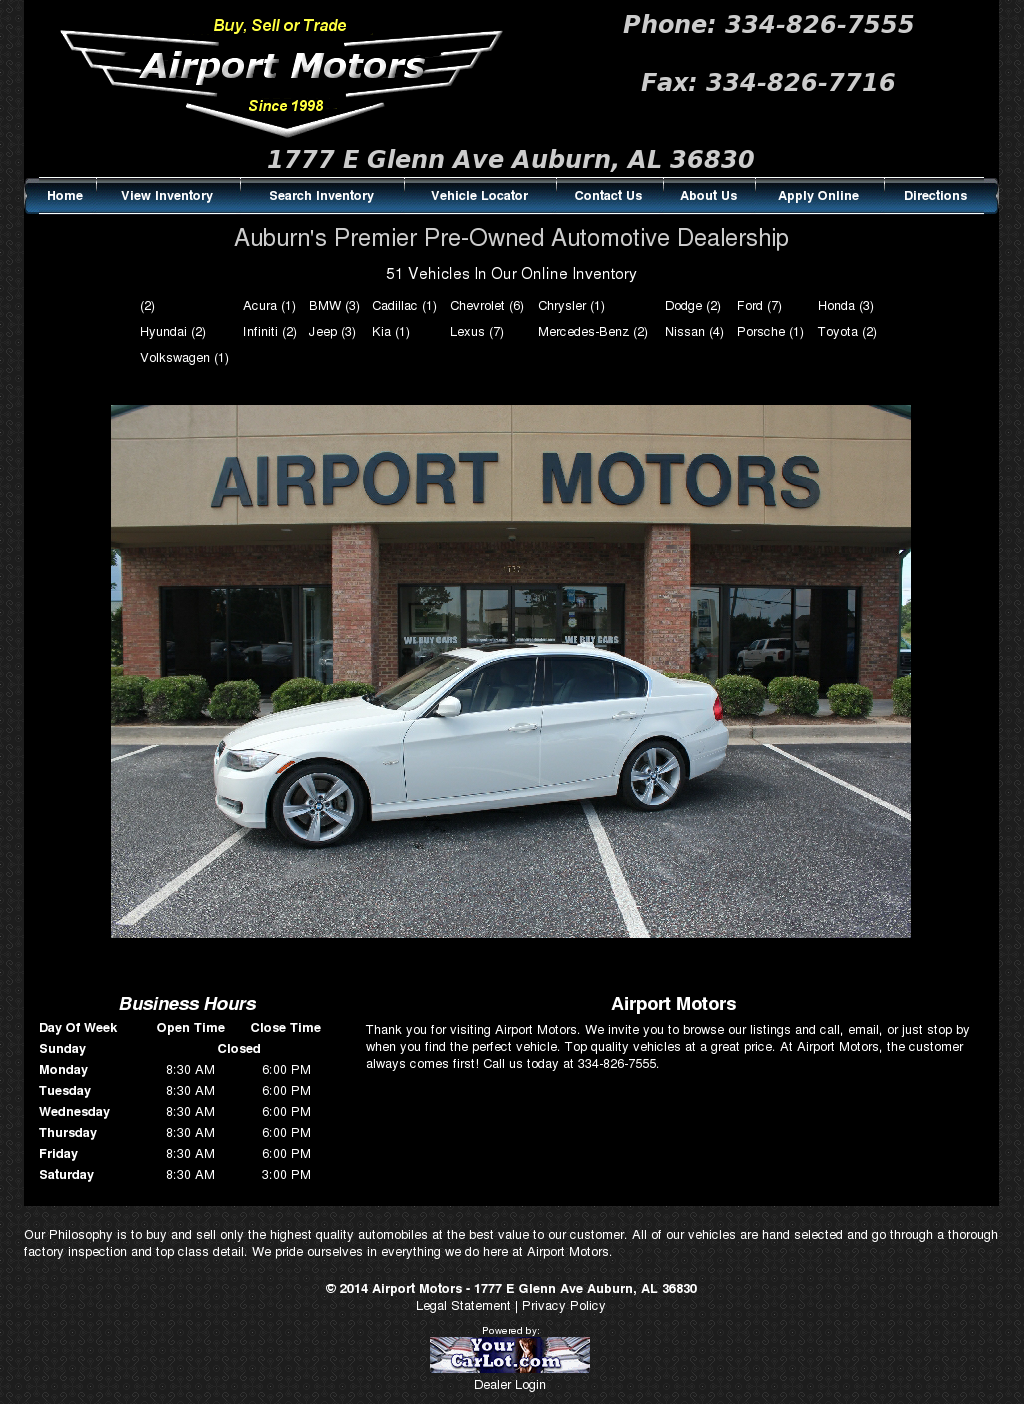 Airport Motors Competitors, Revenue and Employees - Owler Company Profile